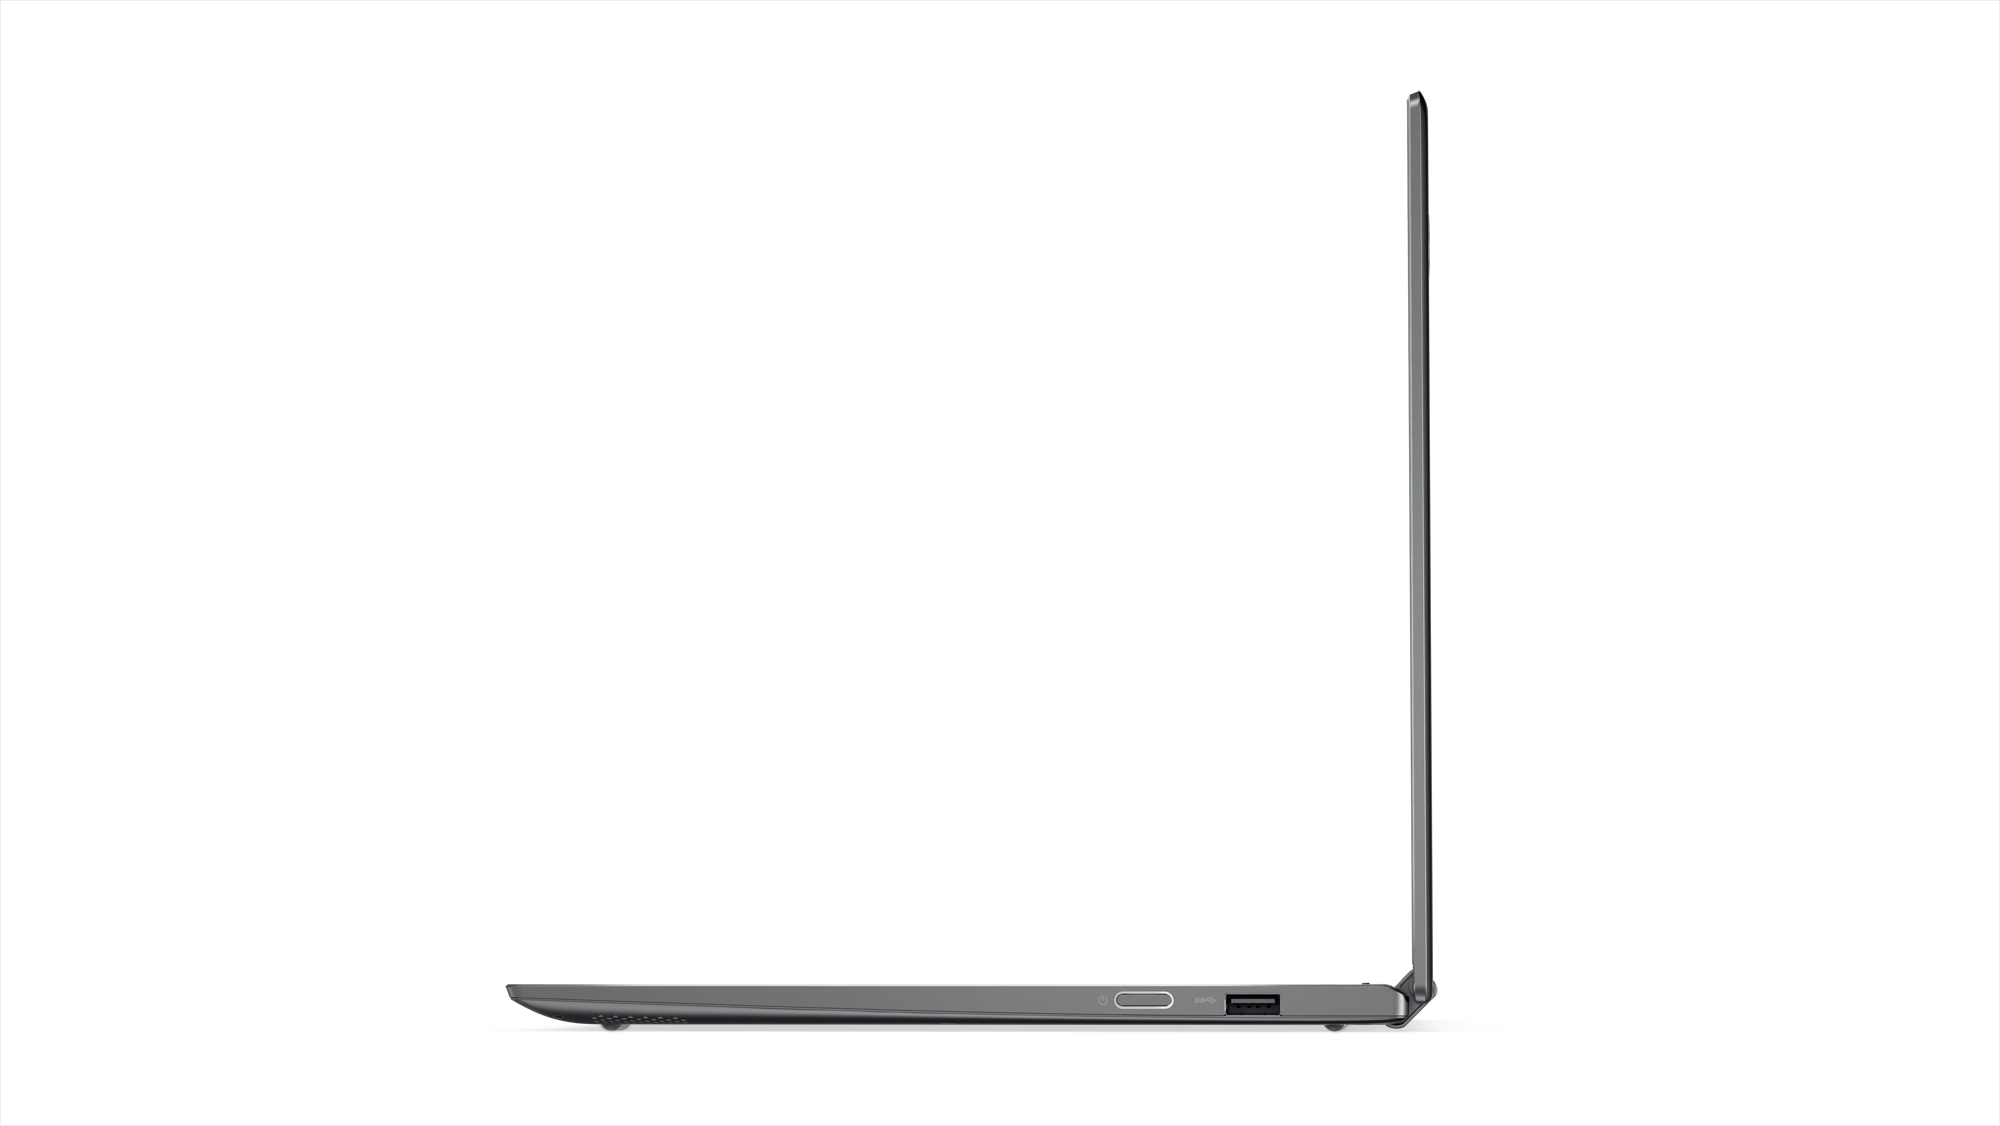 Фото  Ультрабук Lenovo Yoga 720 Iron Grey (81C300A3RA)